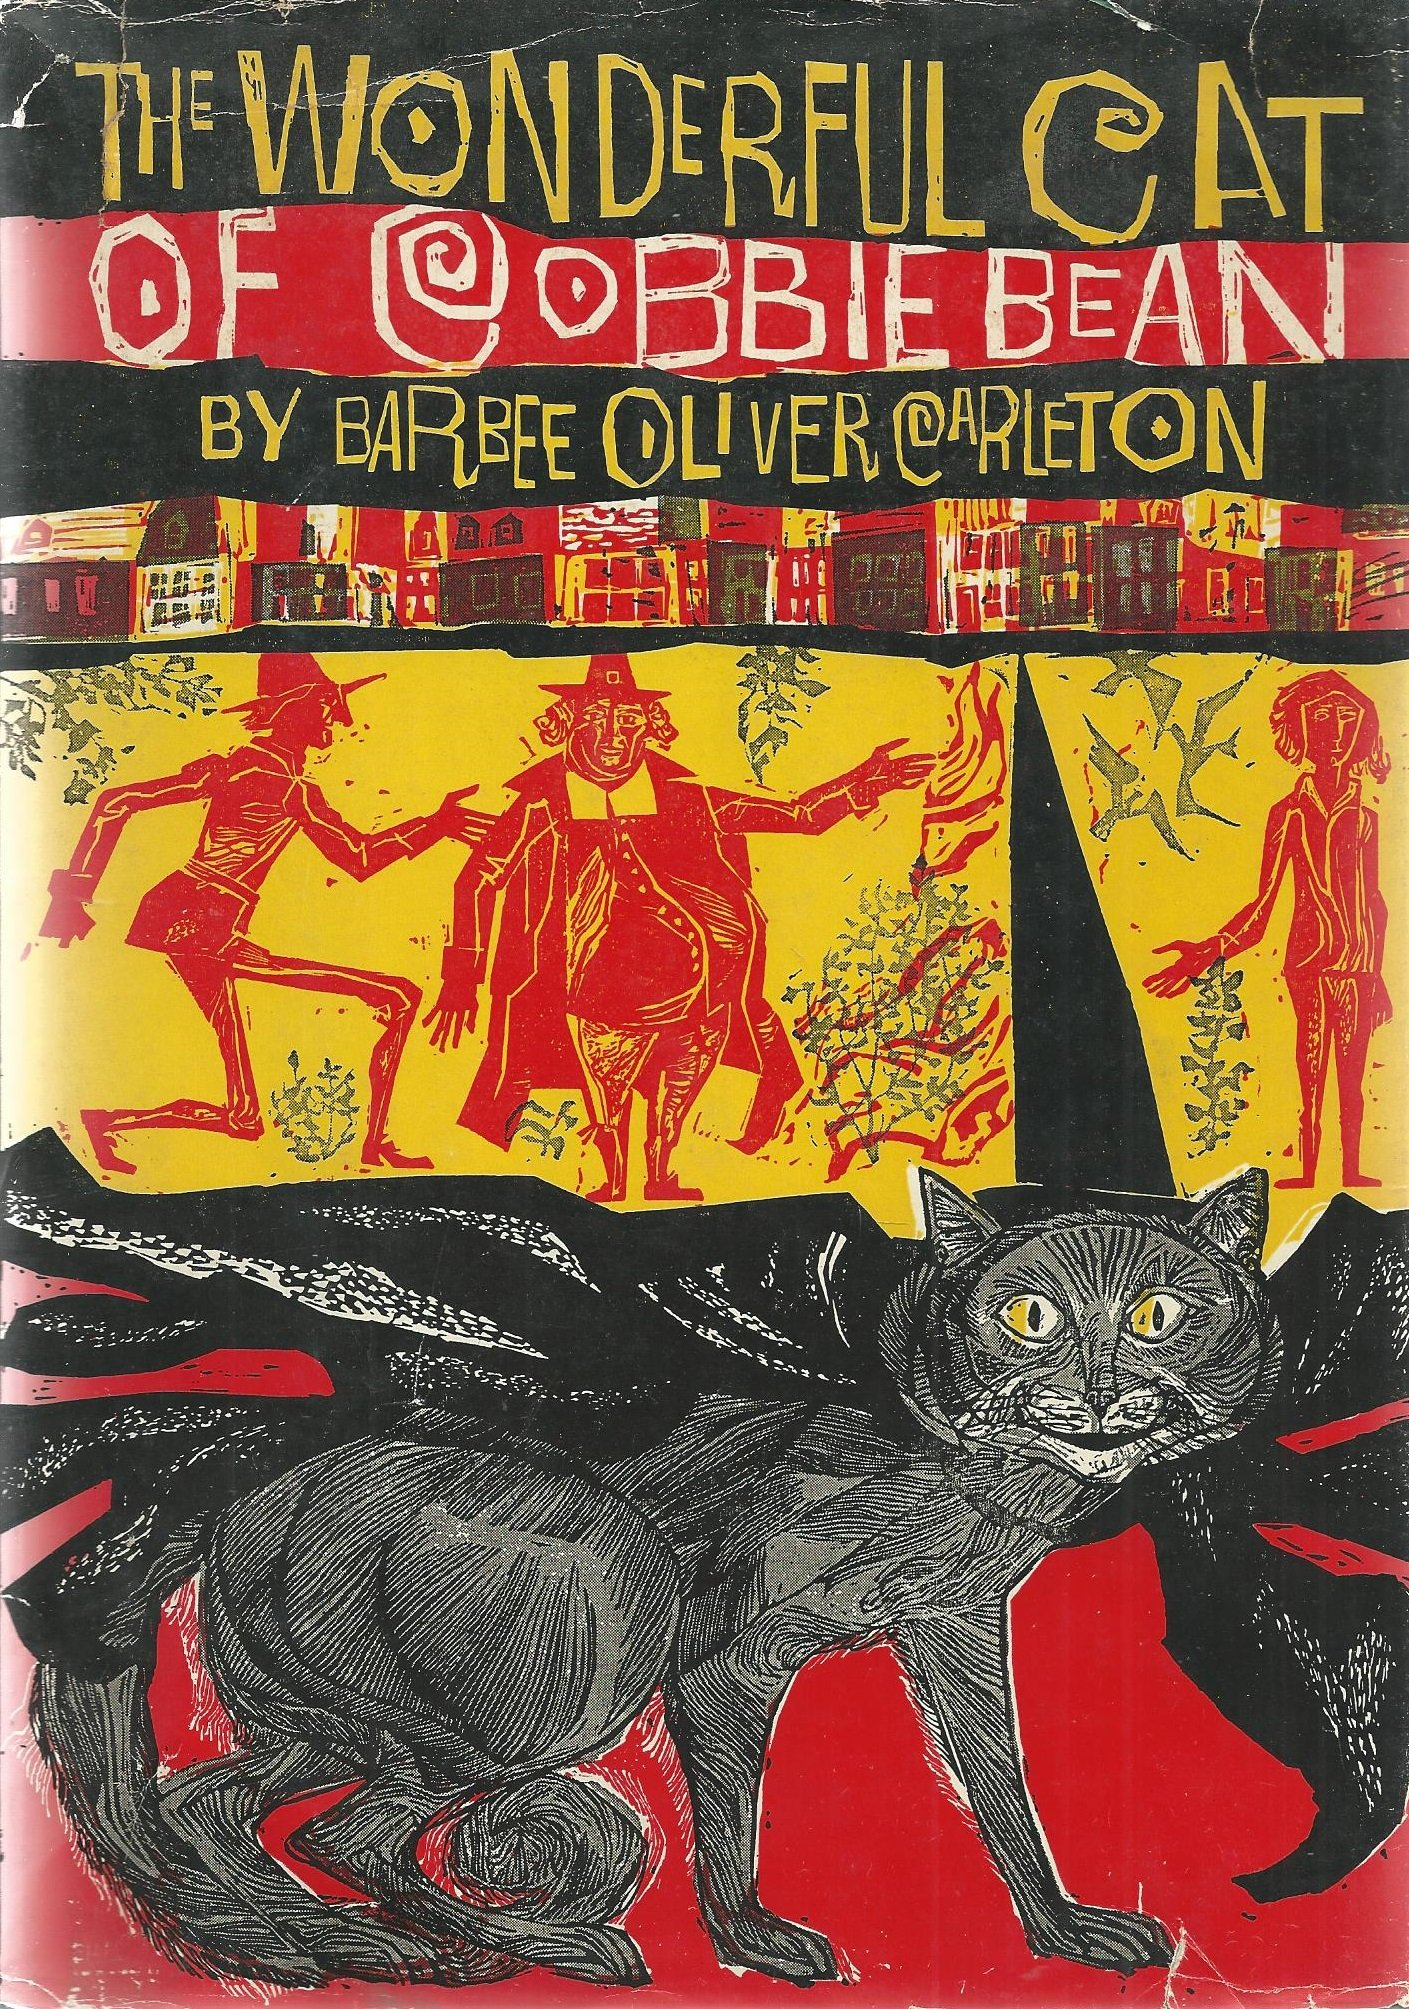 The Wonderful Cat of Cobbie Bean: Barbee Oliver Carleton: Amazon.com: Books